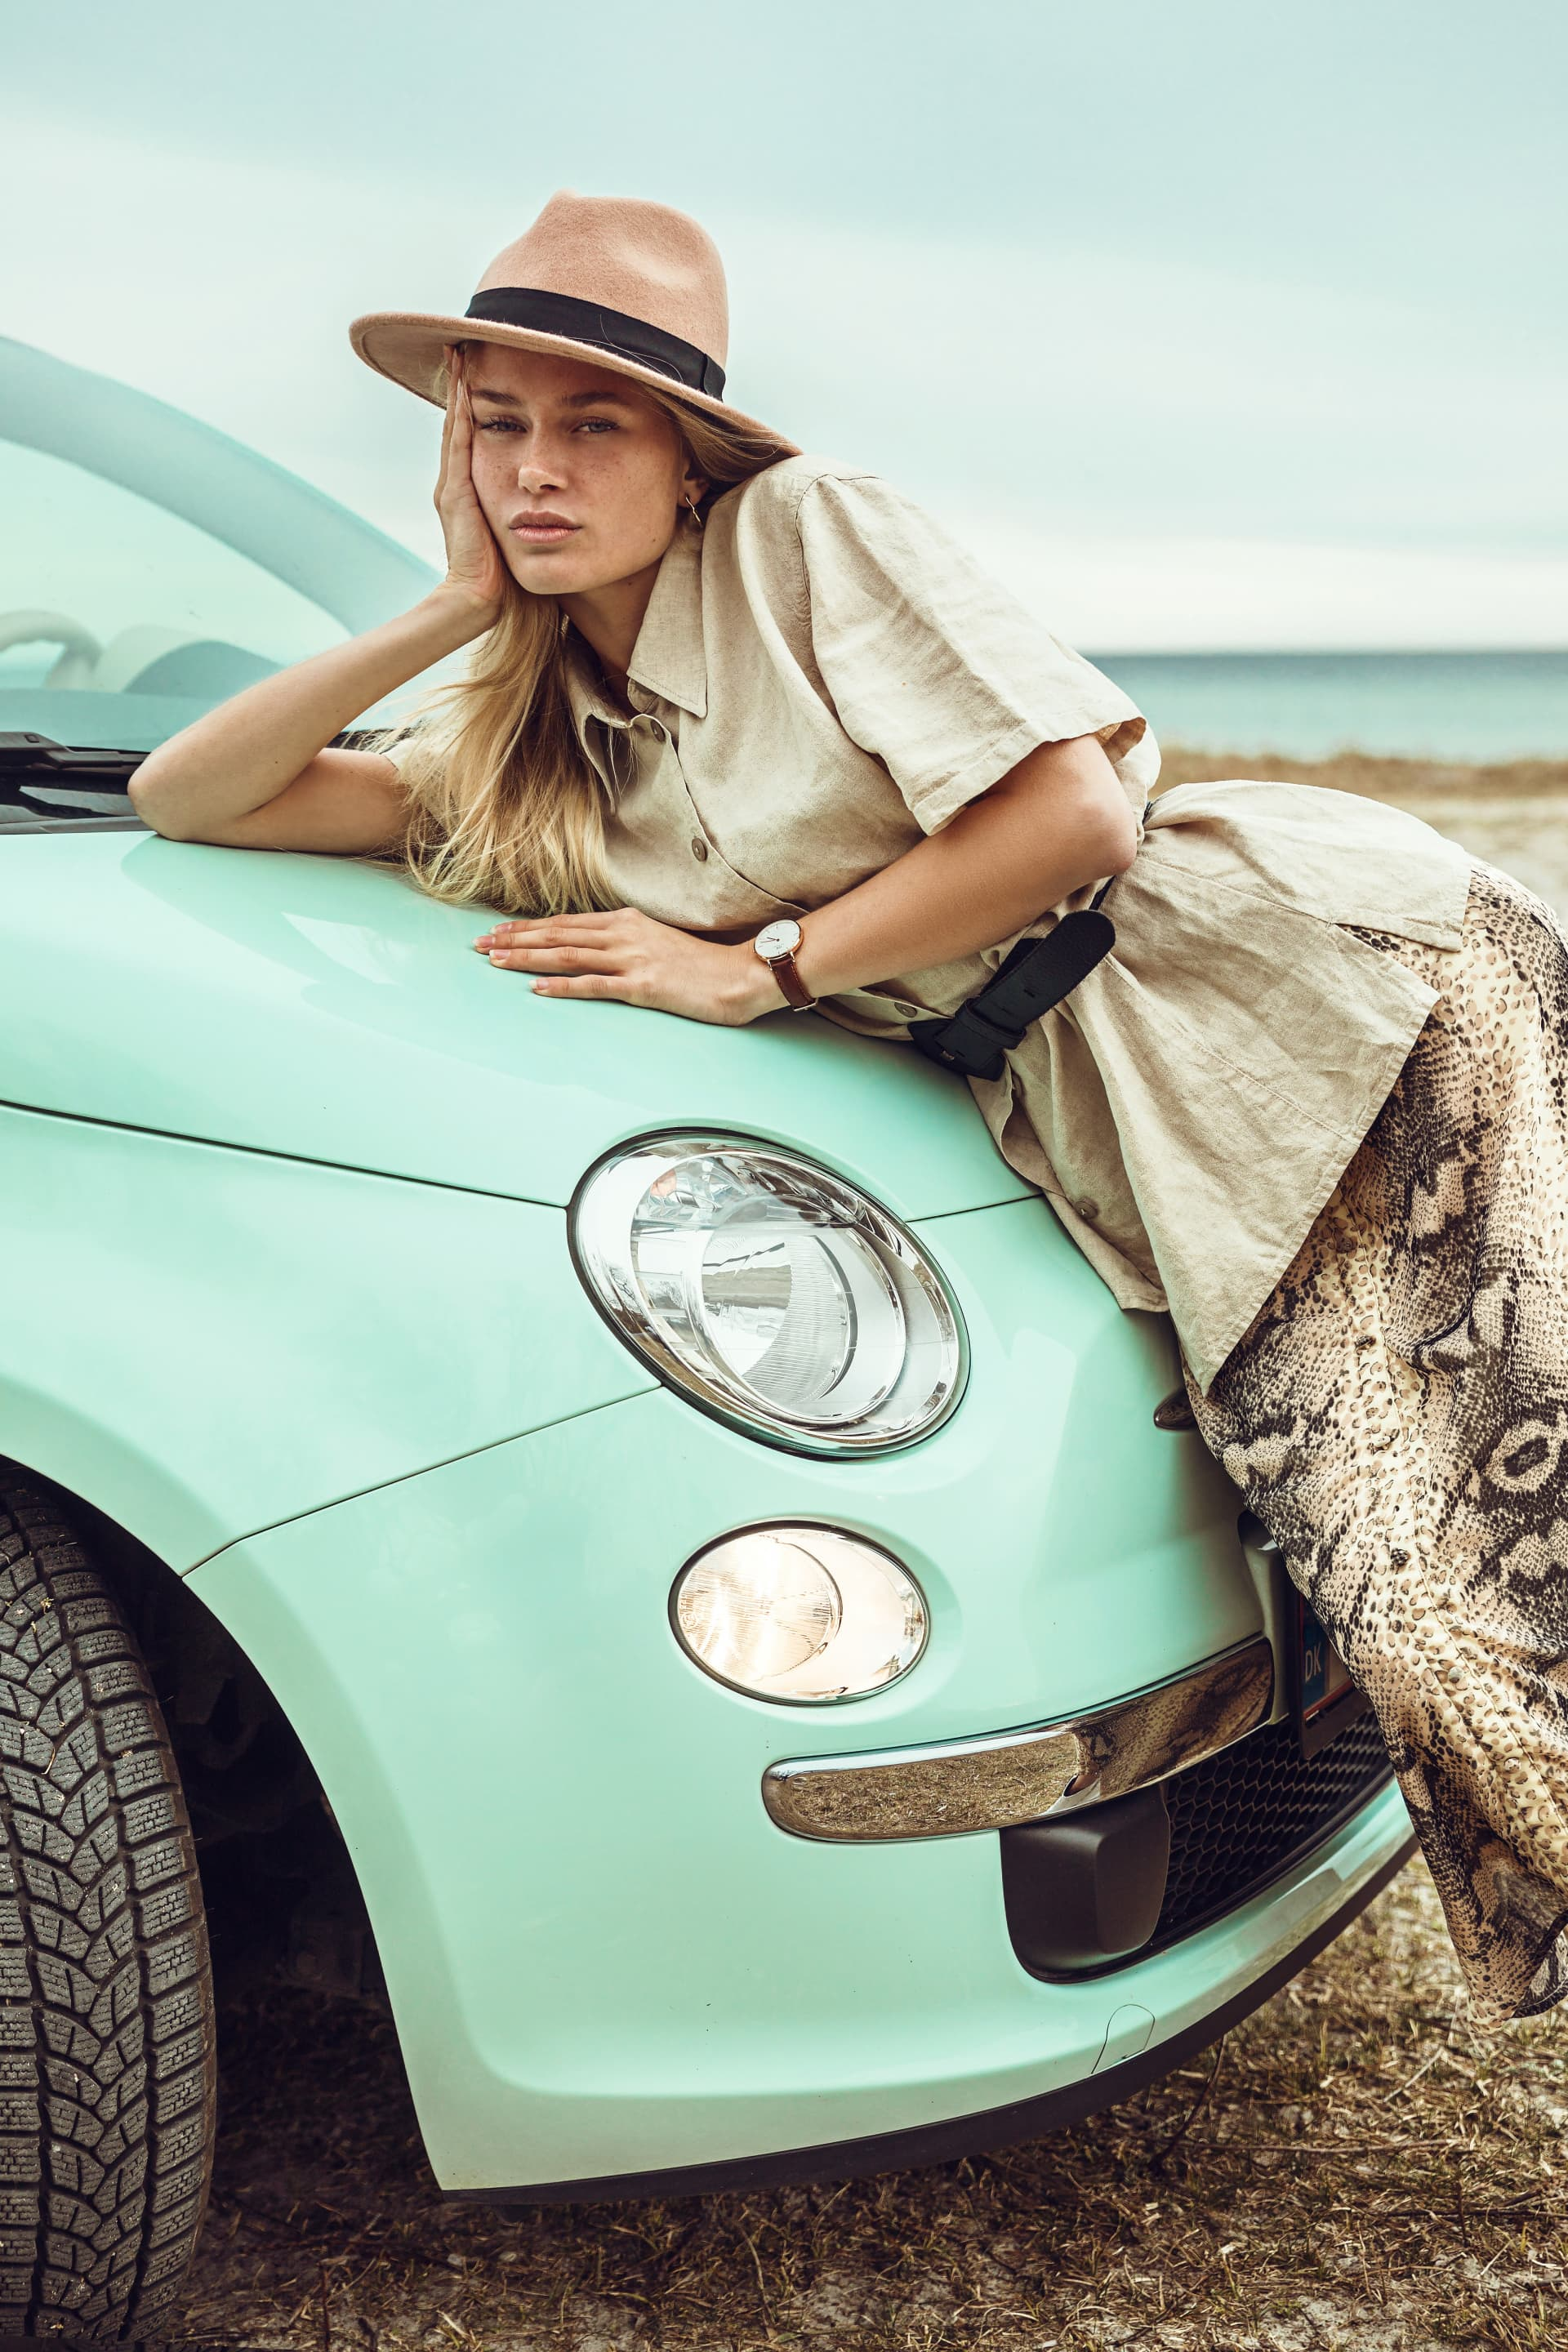 Can't we just go? Shirt, Elton. Hat and skirt, Pieces. Watch, Daniel Wellington. Car, Fiat 500.